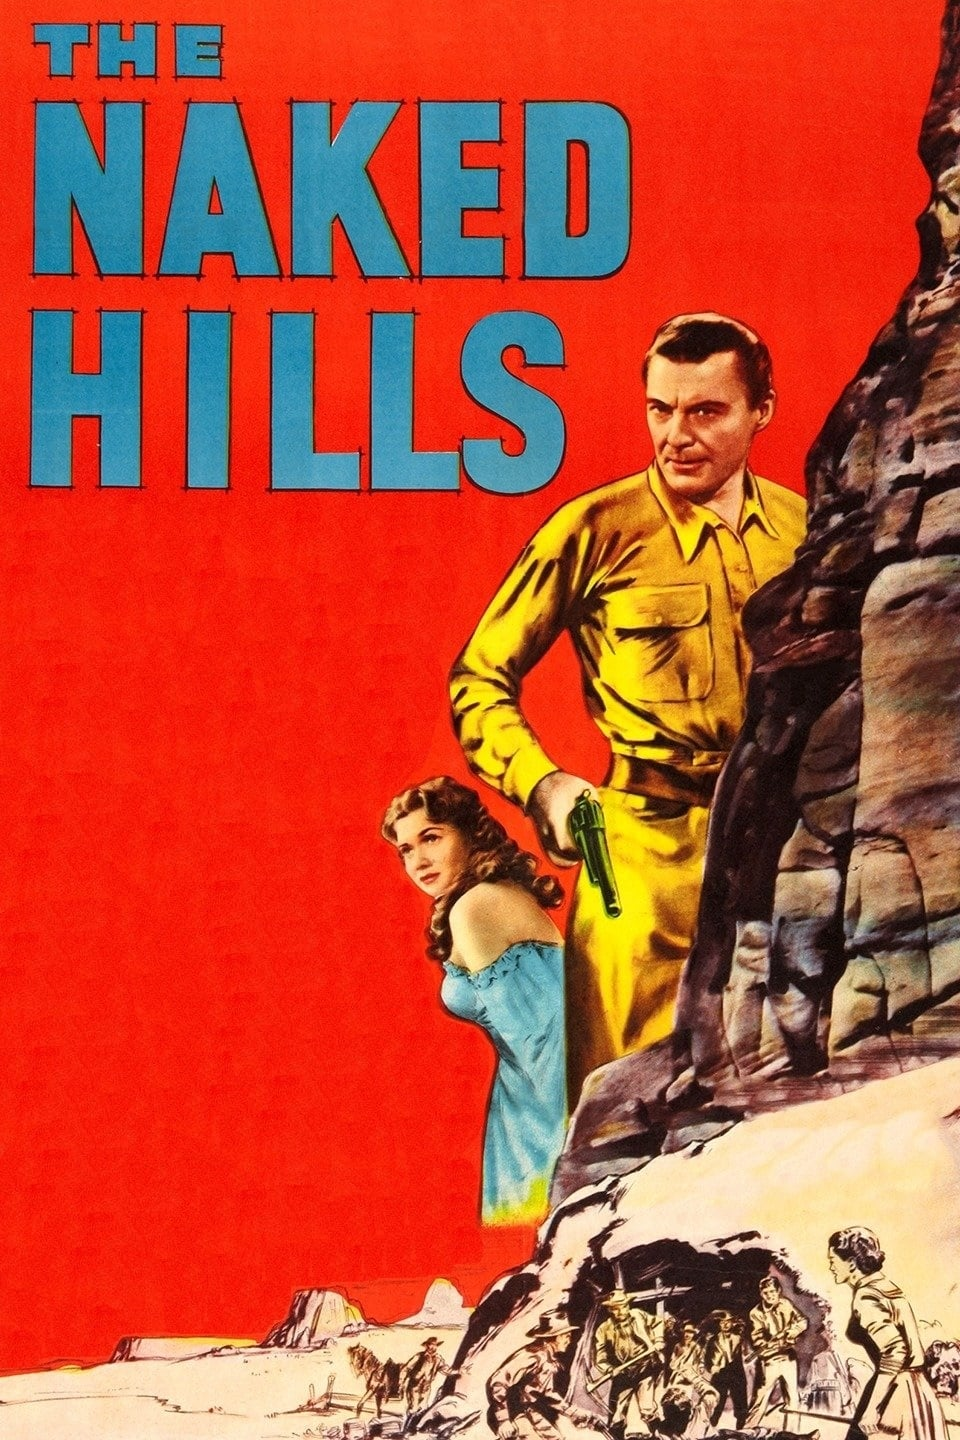 The Naked Hills (1956)